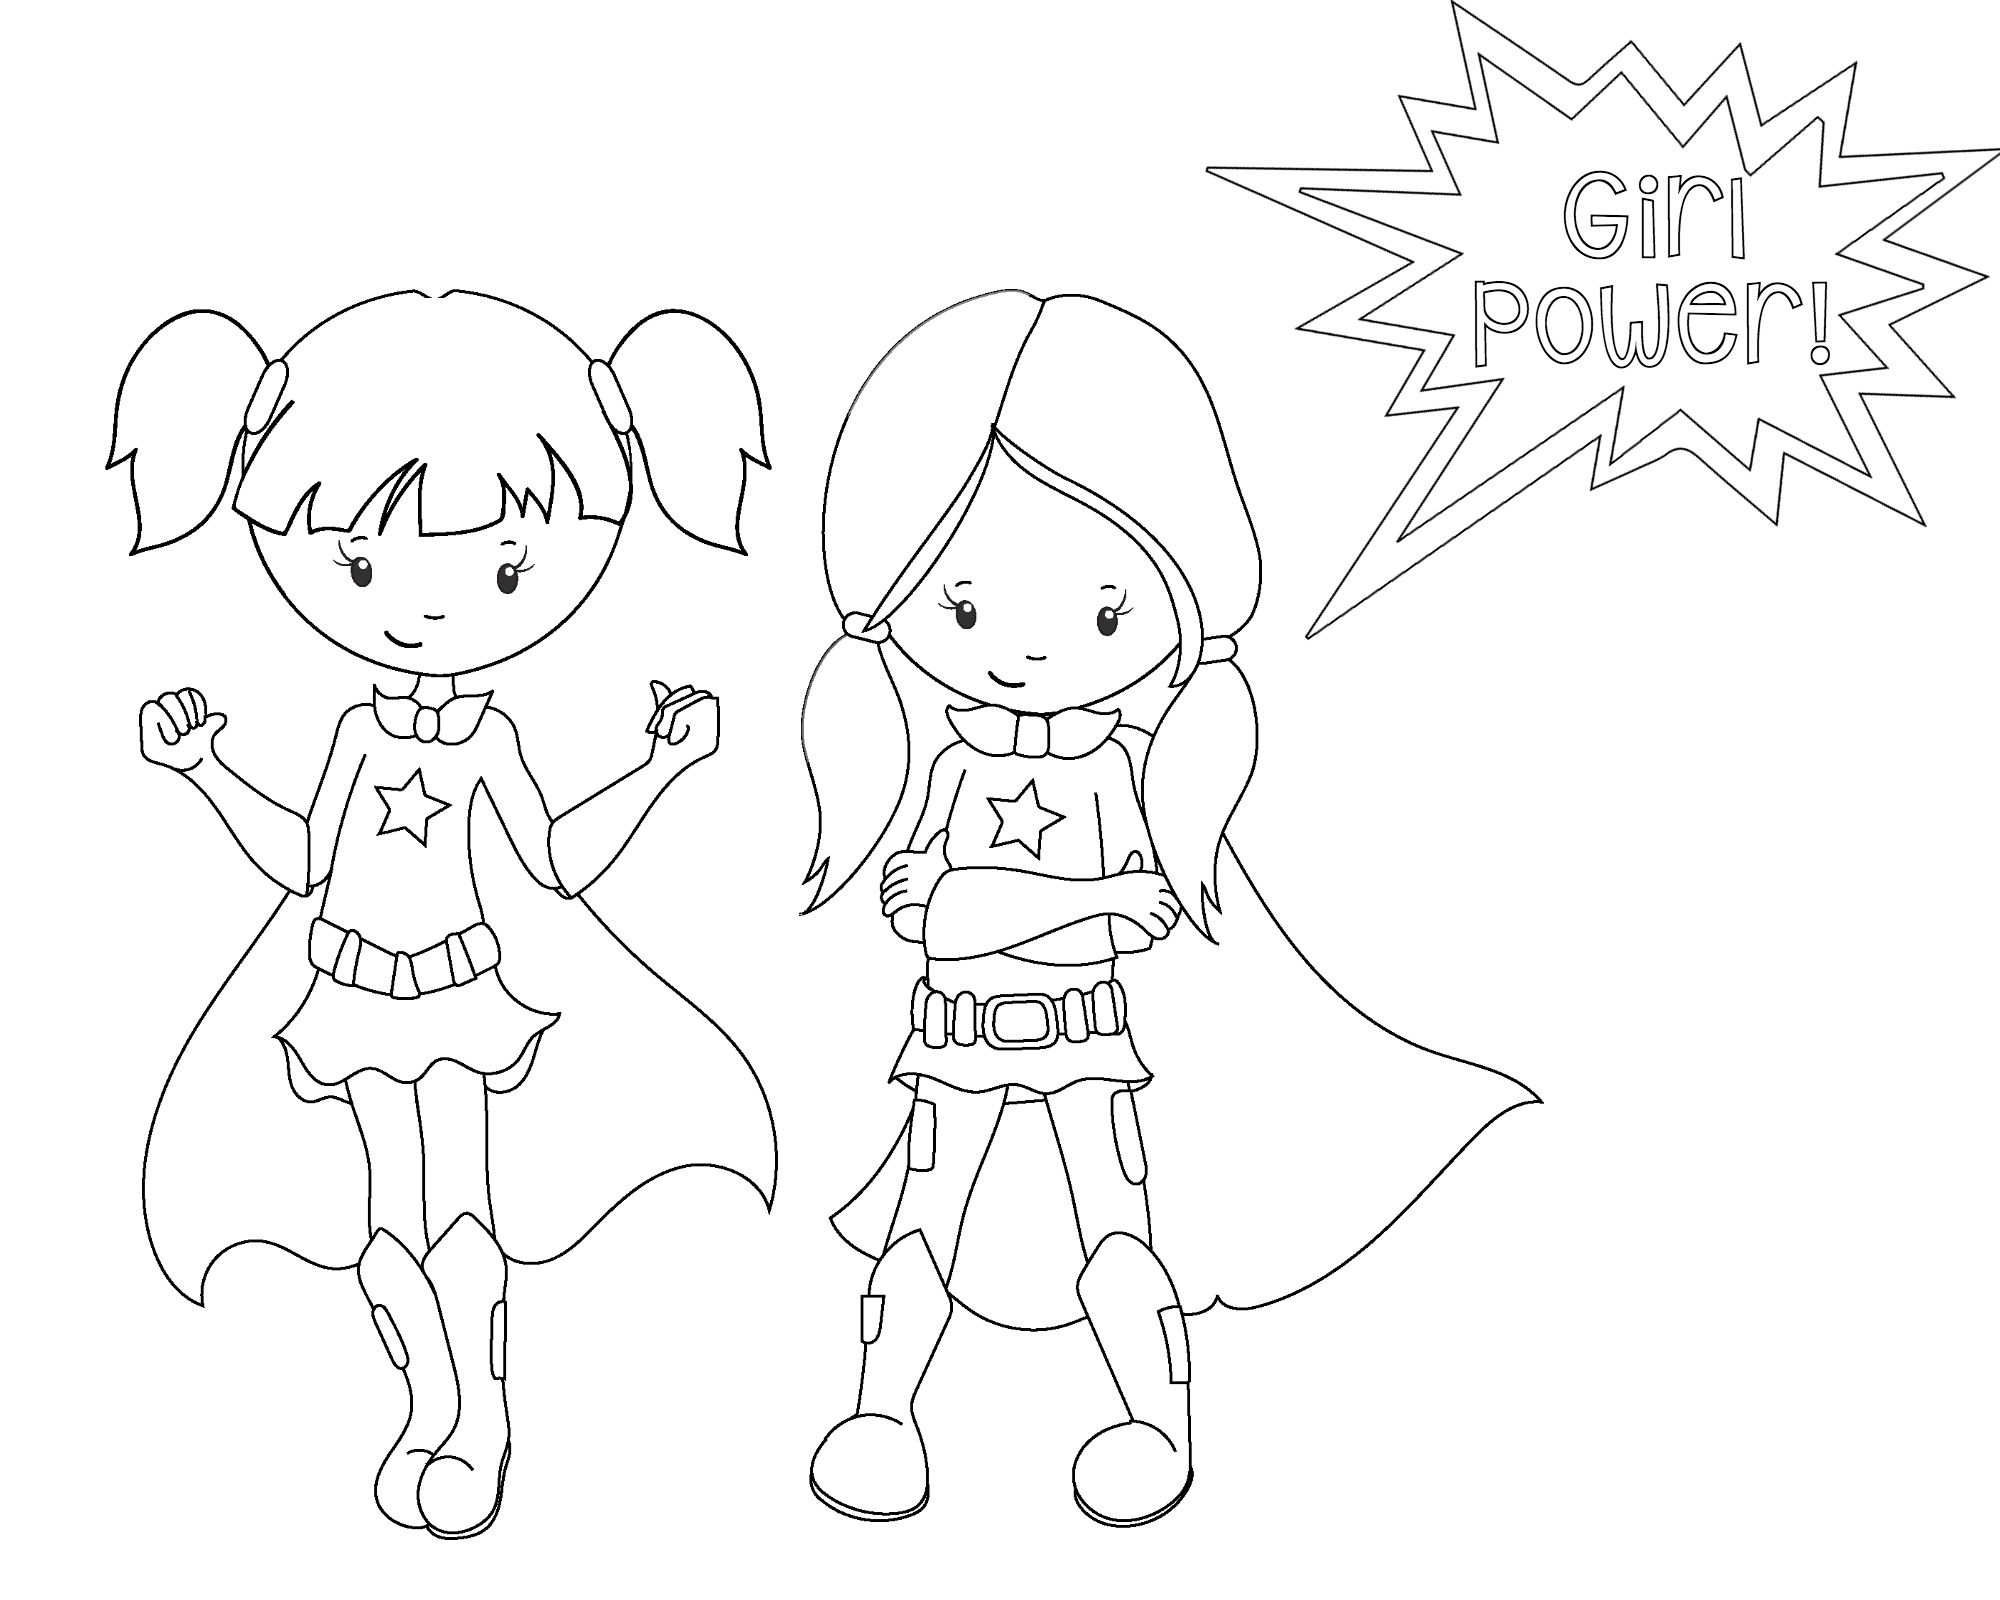 Printable Superhero Coloring Pages At Getdrawings